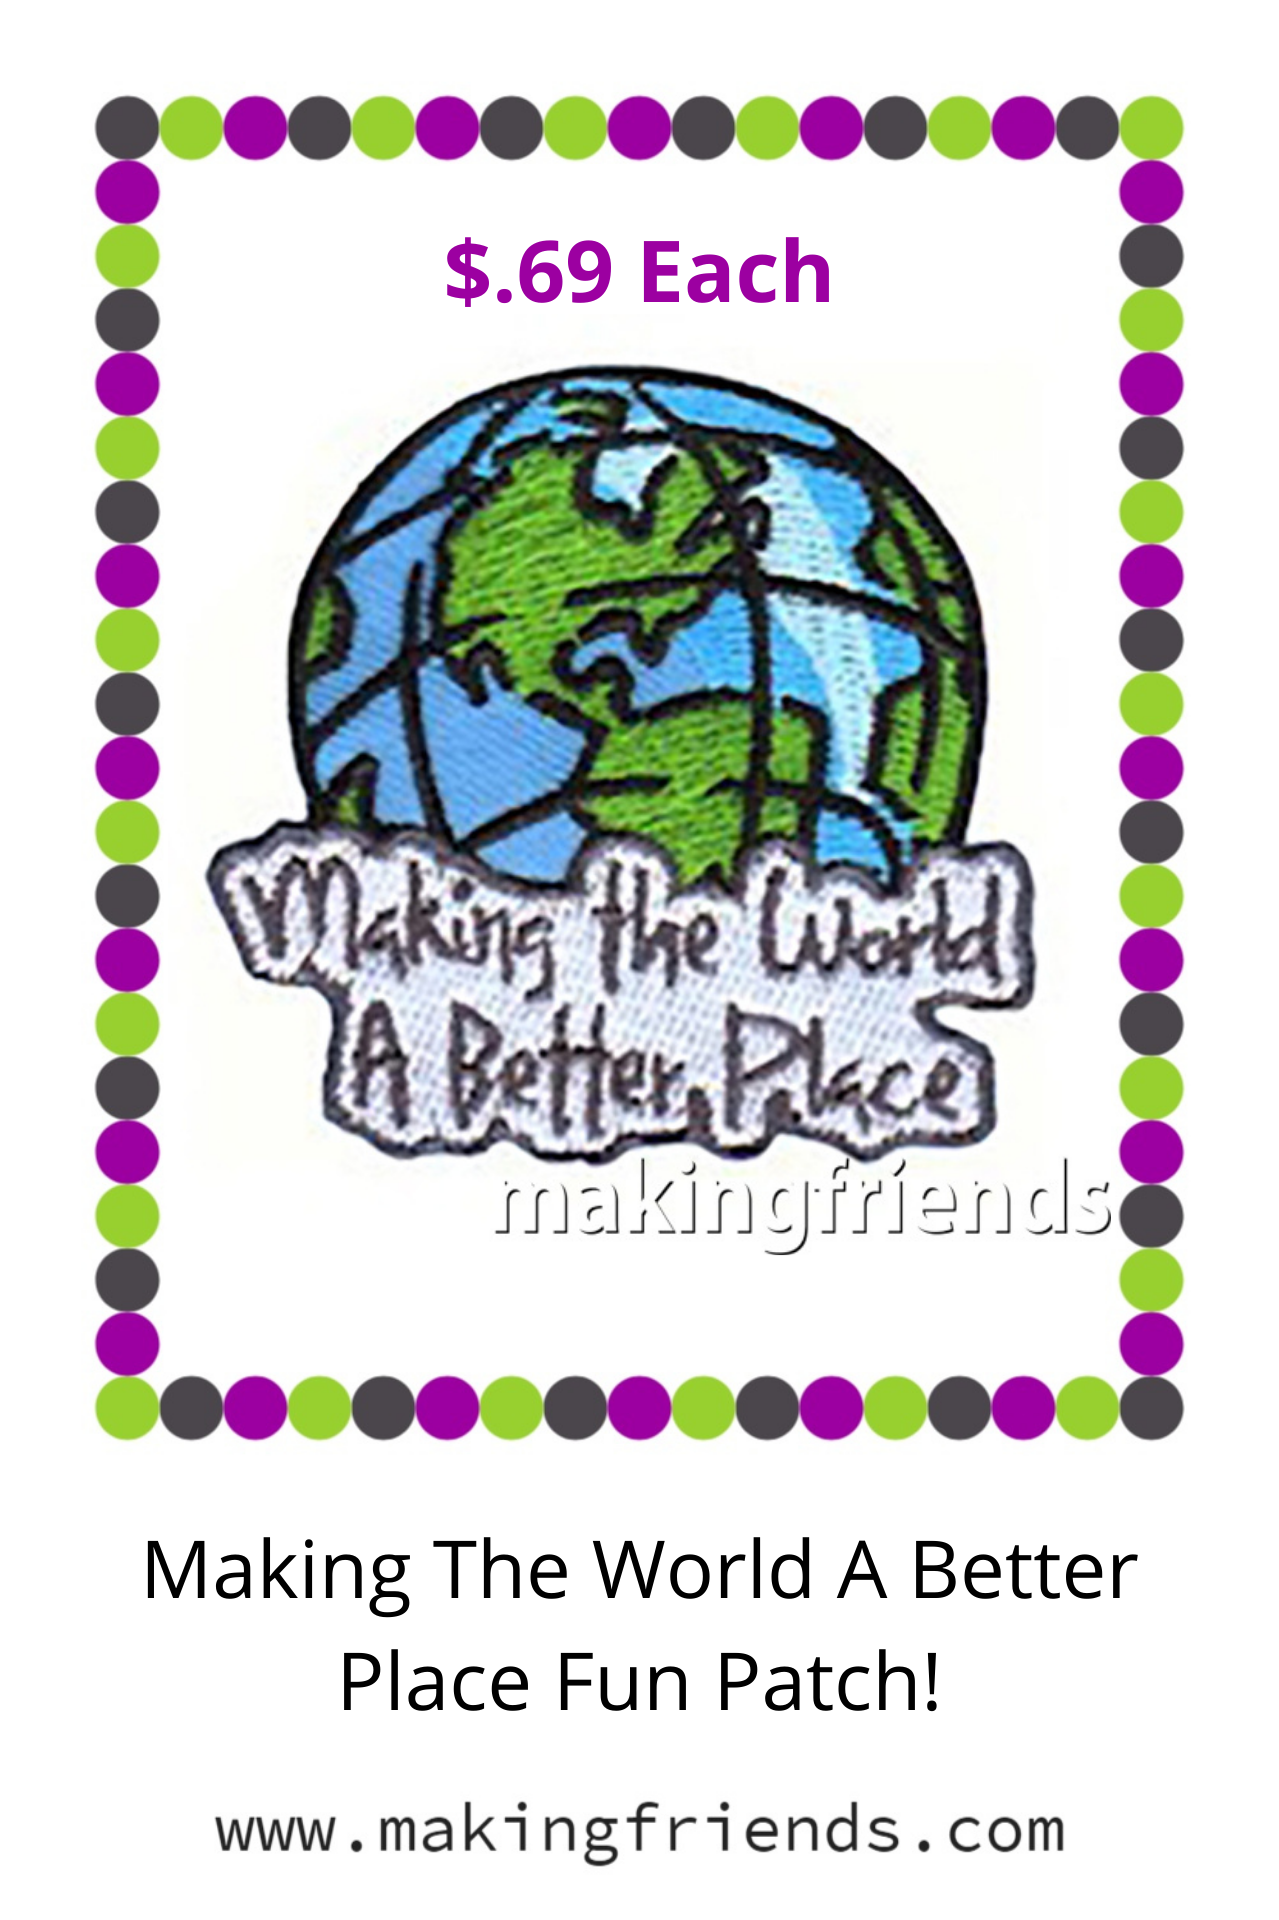 Don't you love this patch from MakingFriends.com? Perfect for service projects of all types and a great reminder to make the work a better place! #makingfriends #servicepatch #makingtheworldabetterplace #betterworld #patchprogram #gspatches #girlscoutpatches #boyscoutpatches via @gsleader411